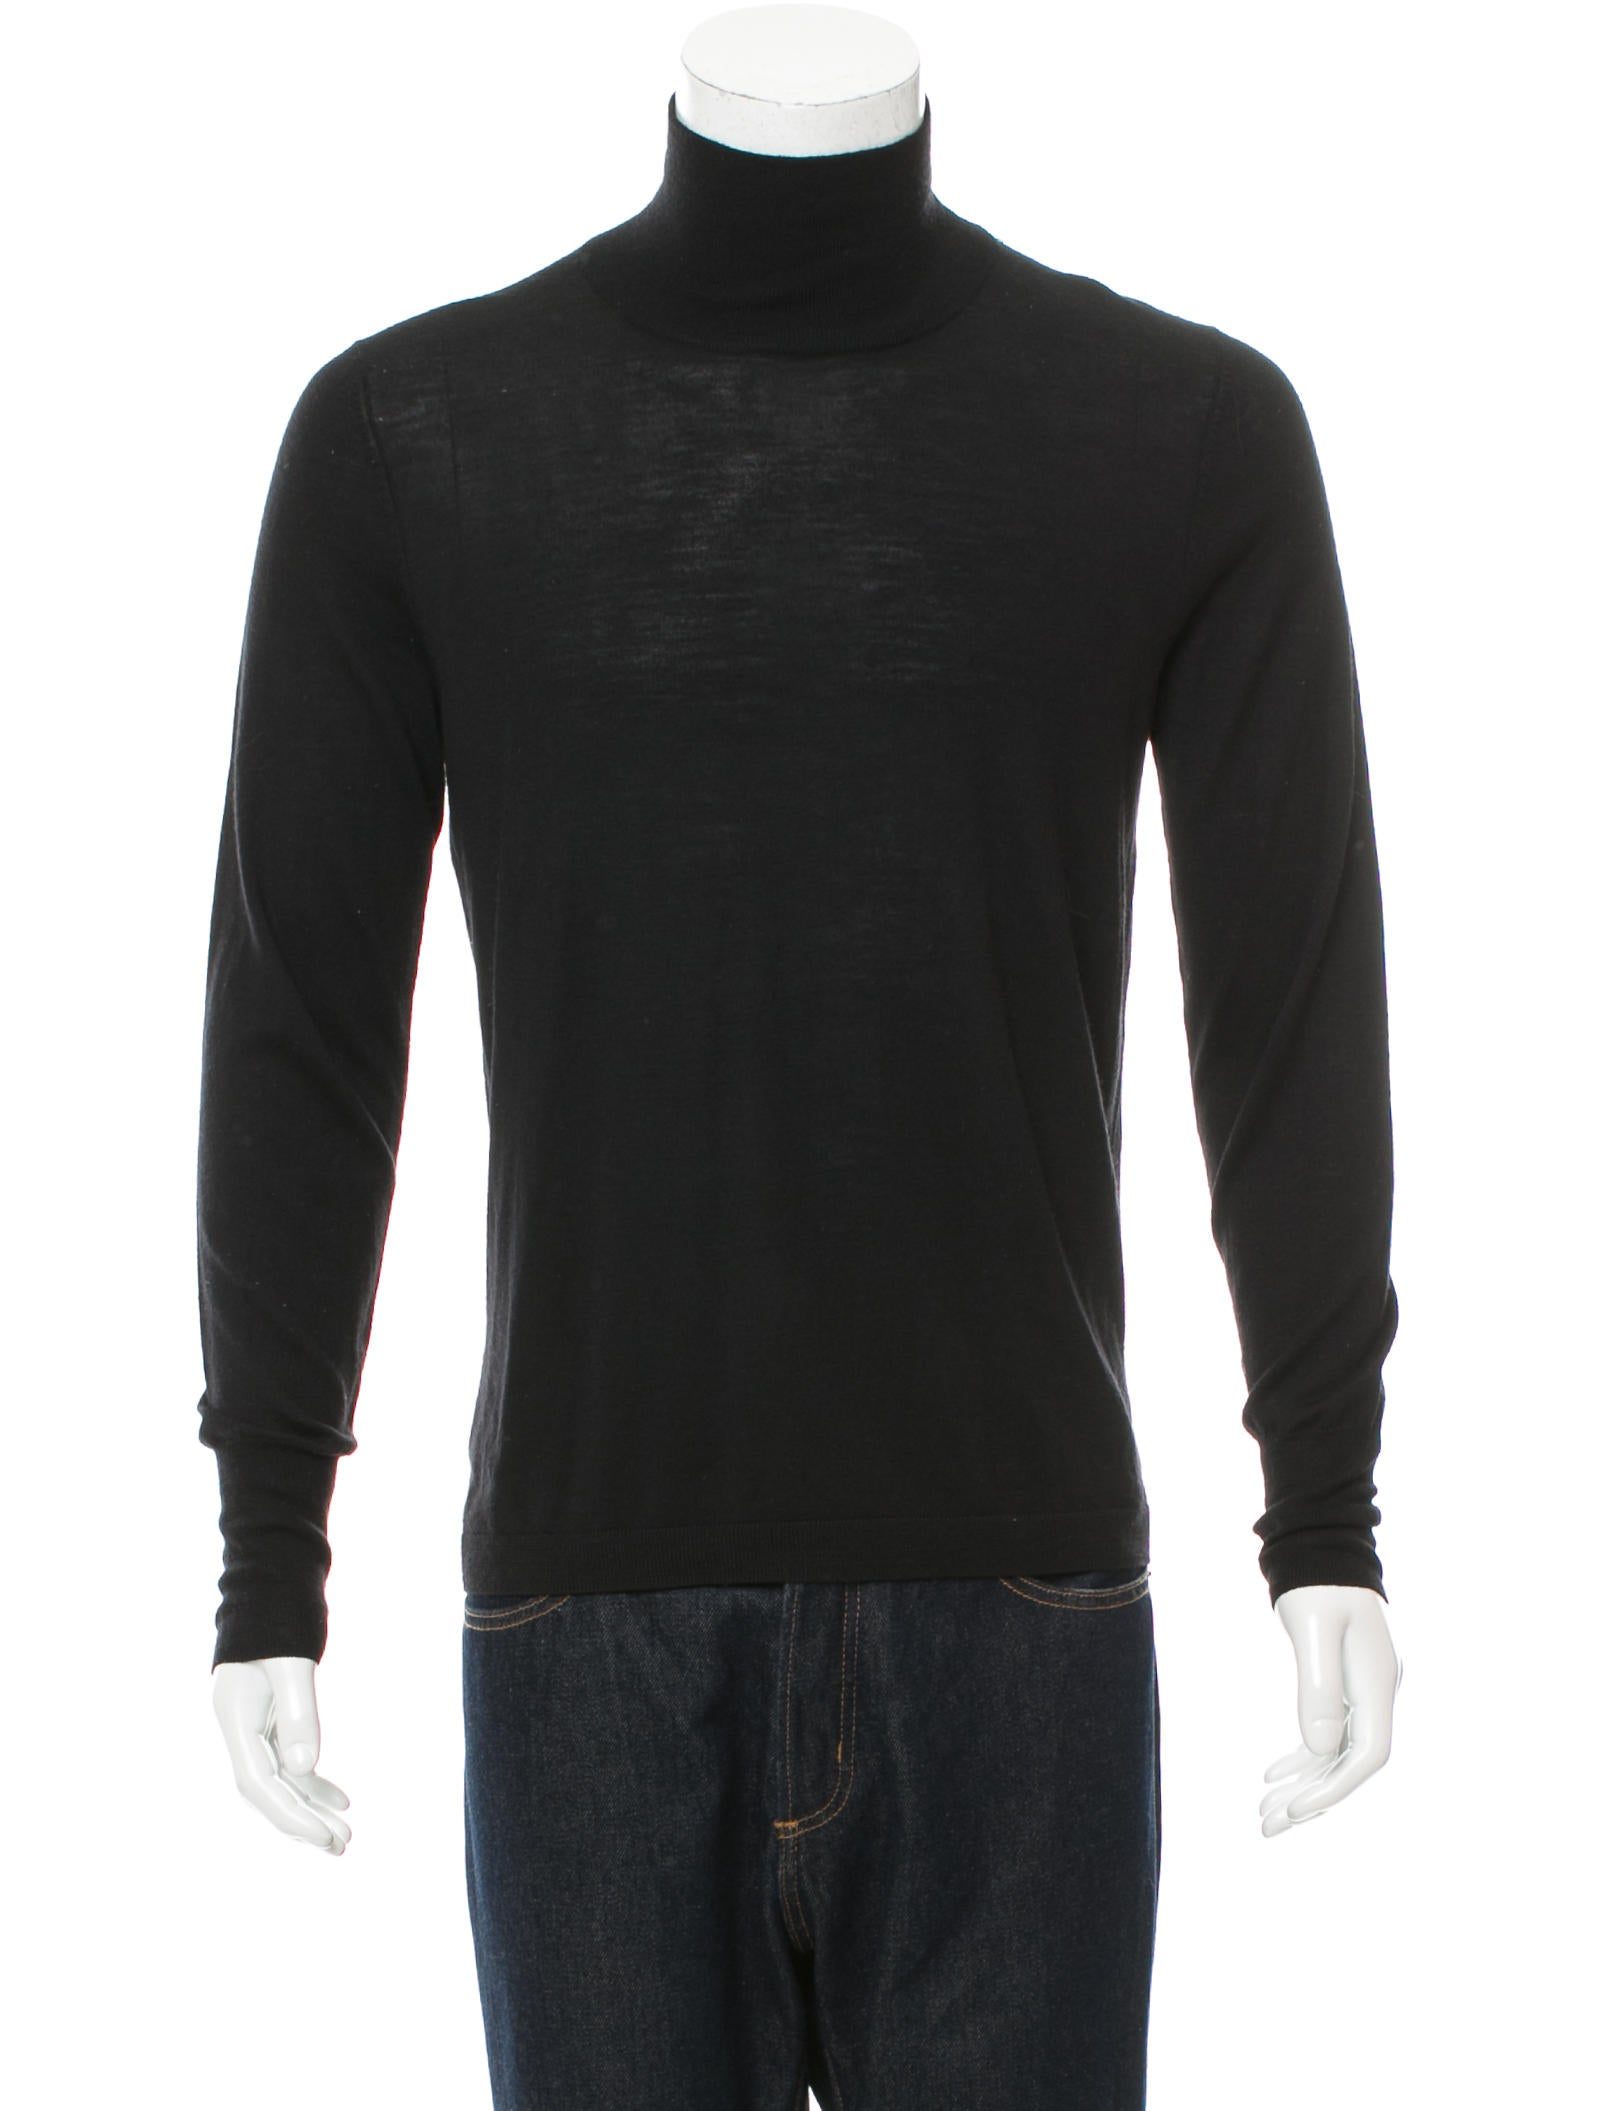 Machine washable Merino wool blend sweaters give warm relaxed fit with temp regulation, moisture management, no-stink properties.